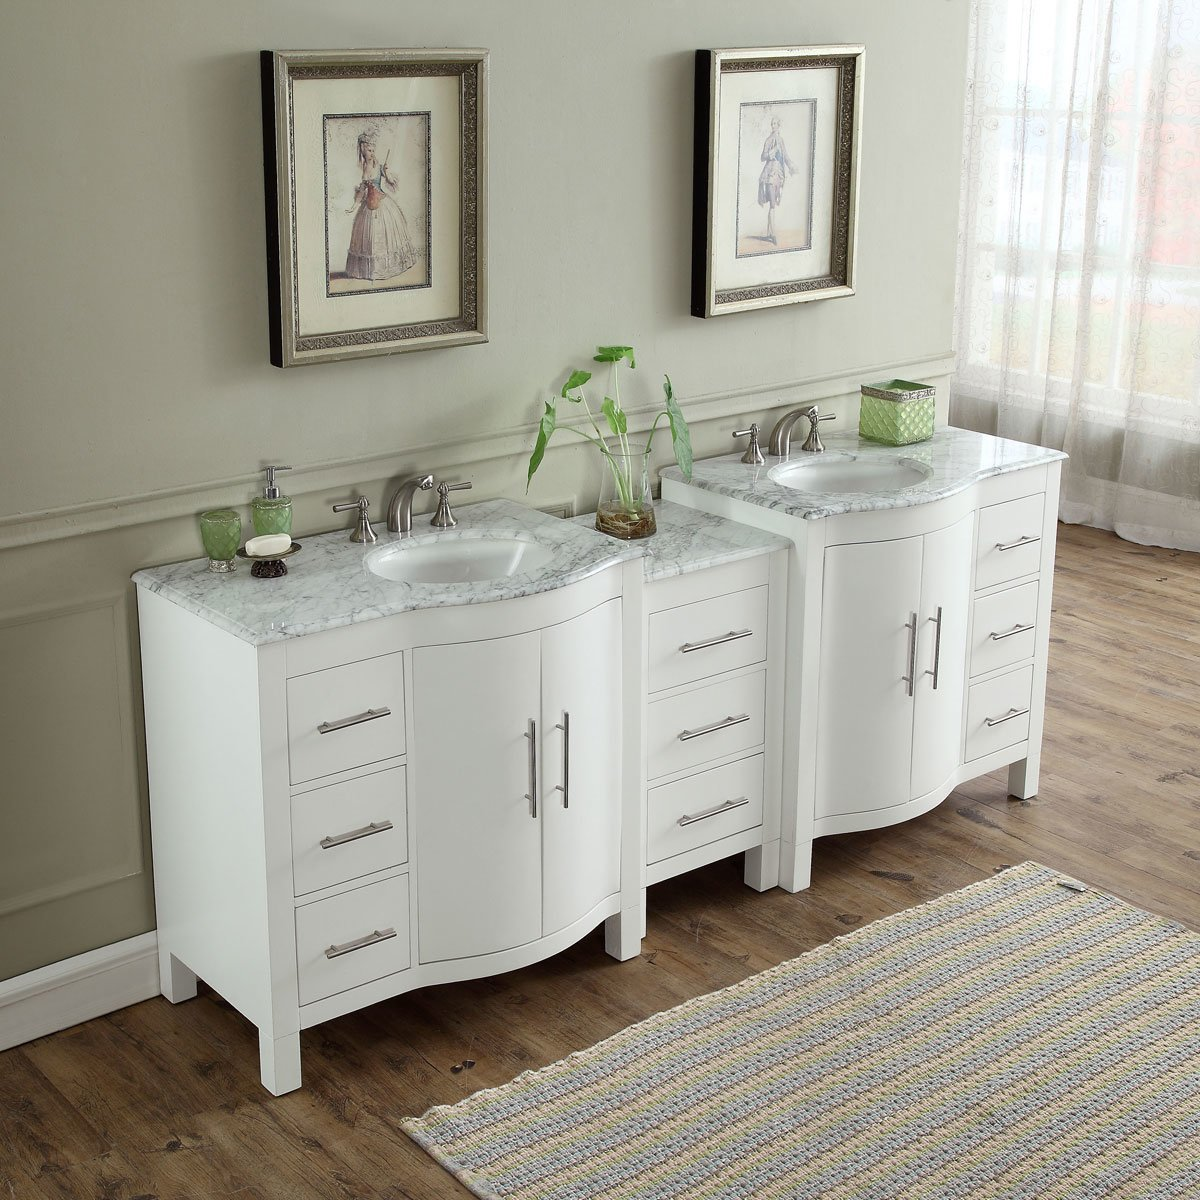 89 inch double sink contemporary bathroom vanity white finish carrara marble top Marble top bathroom vanities